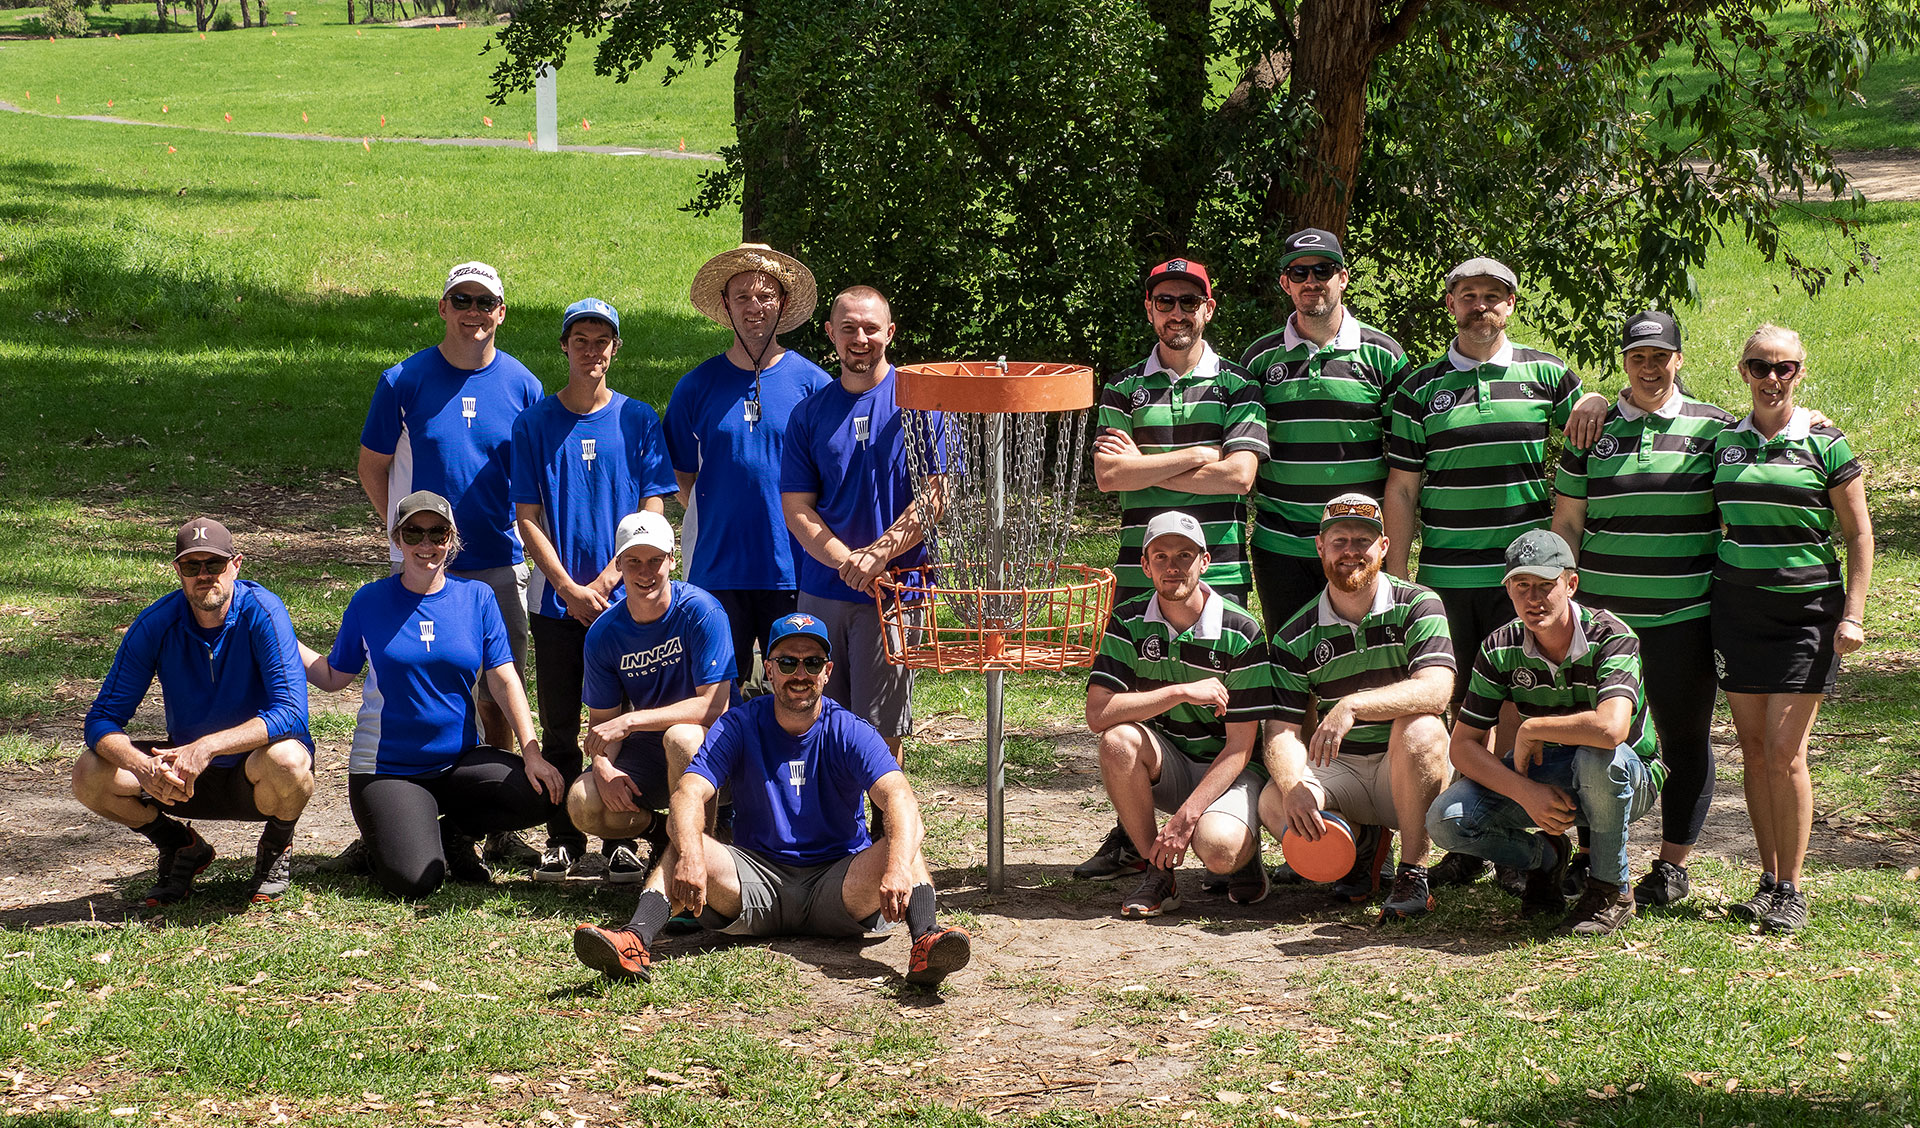 Melbourne and Geelong disc golf teams for the 2020 Westgate Cup